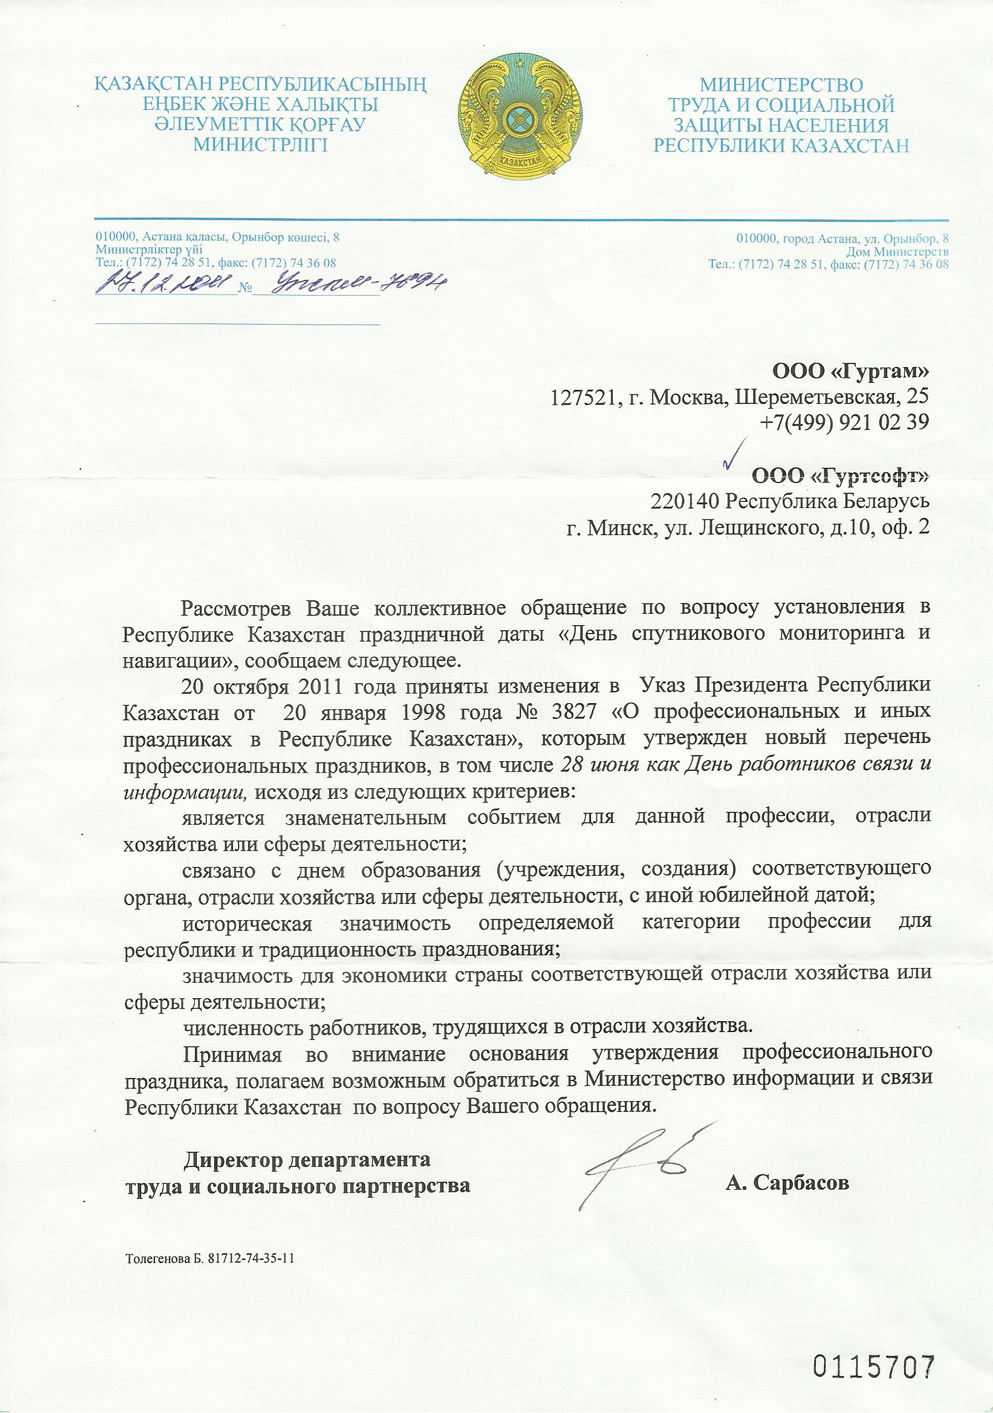 The response from Kazakhstan